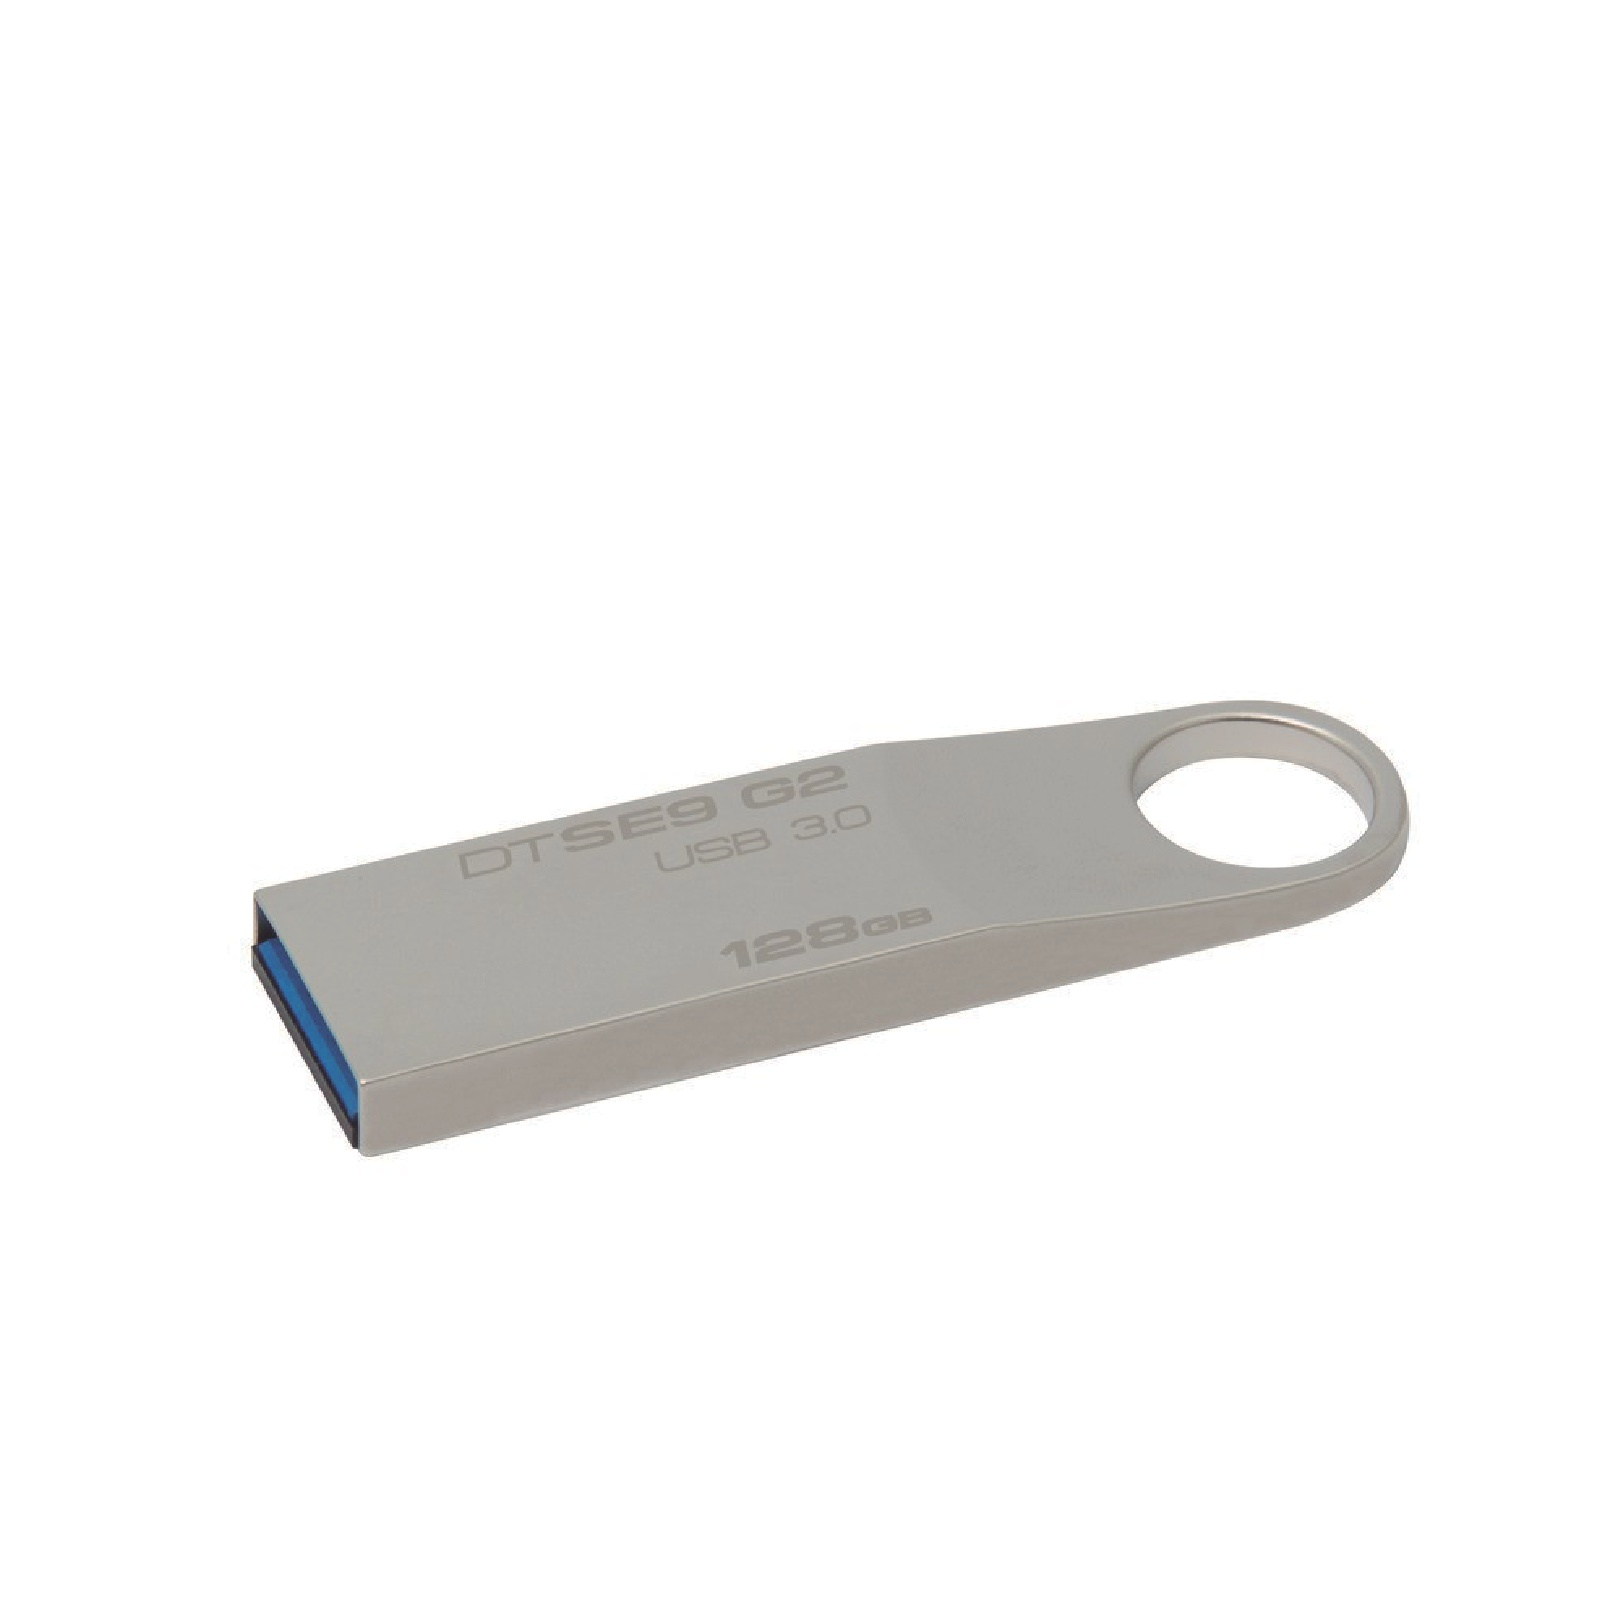 Memoria USB 128GB DTSE9G2  -Kingston-